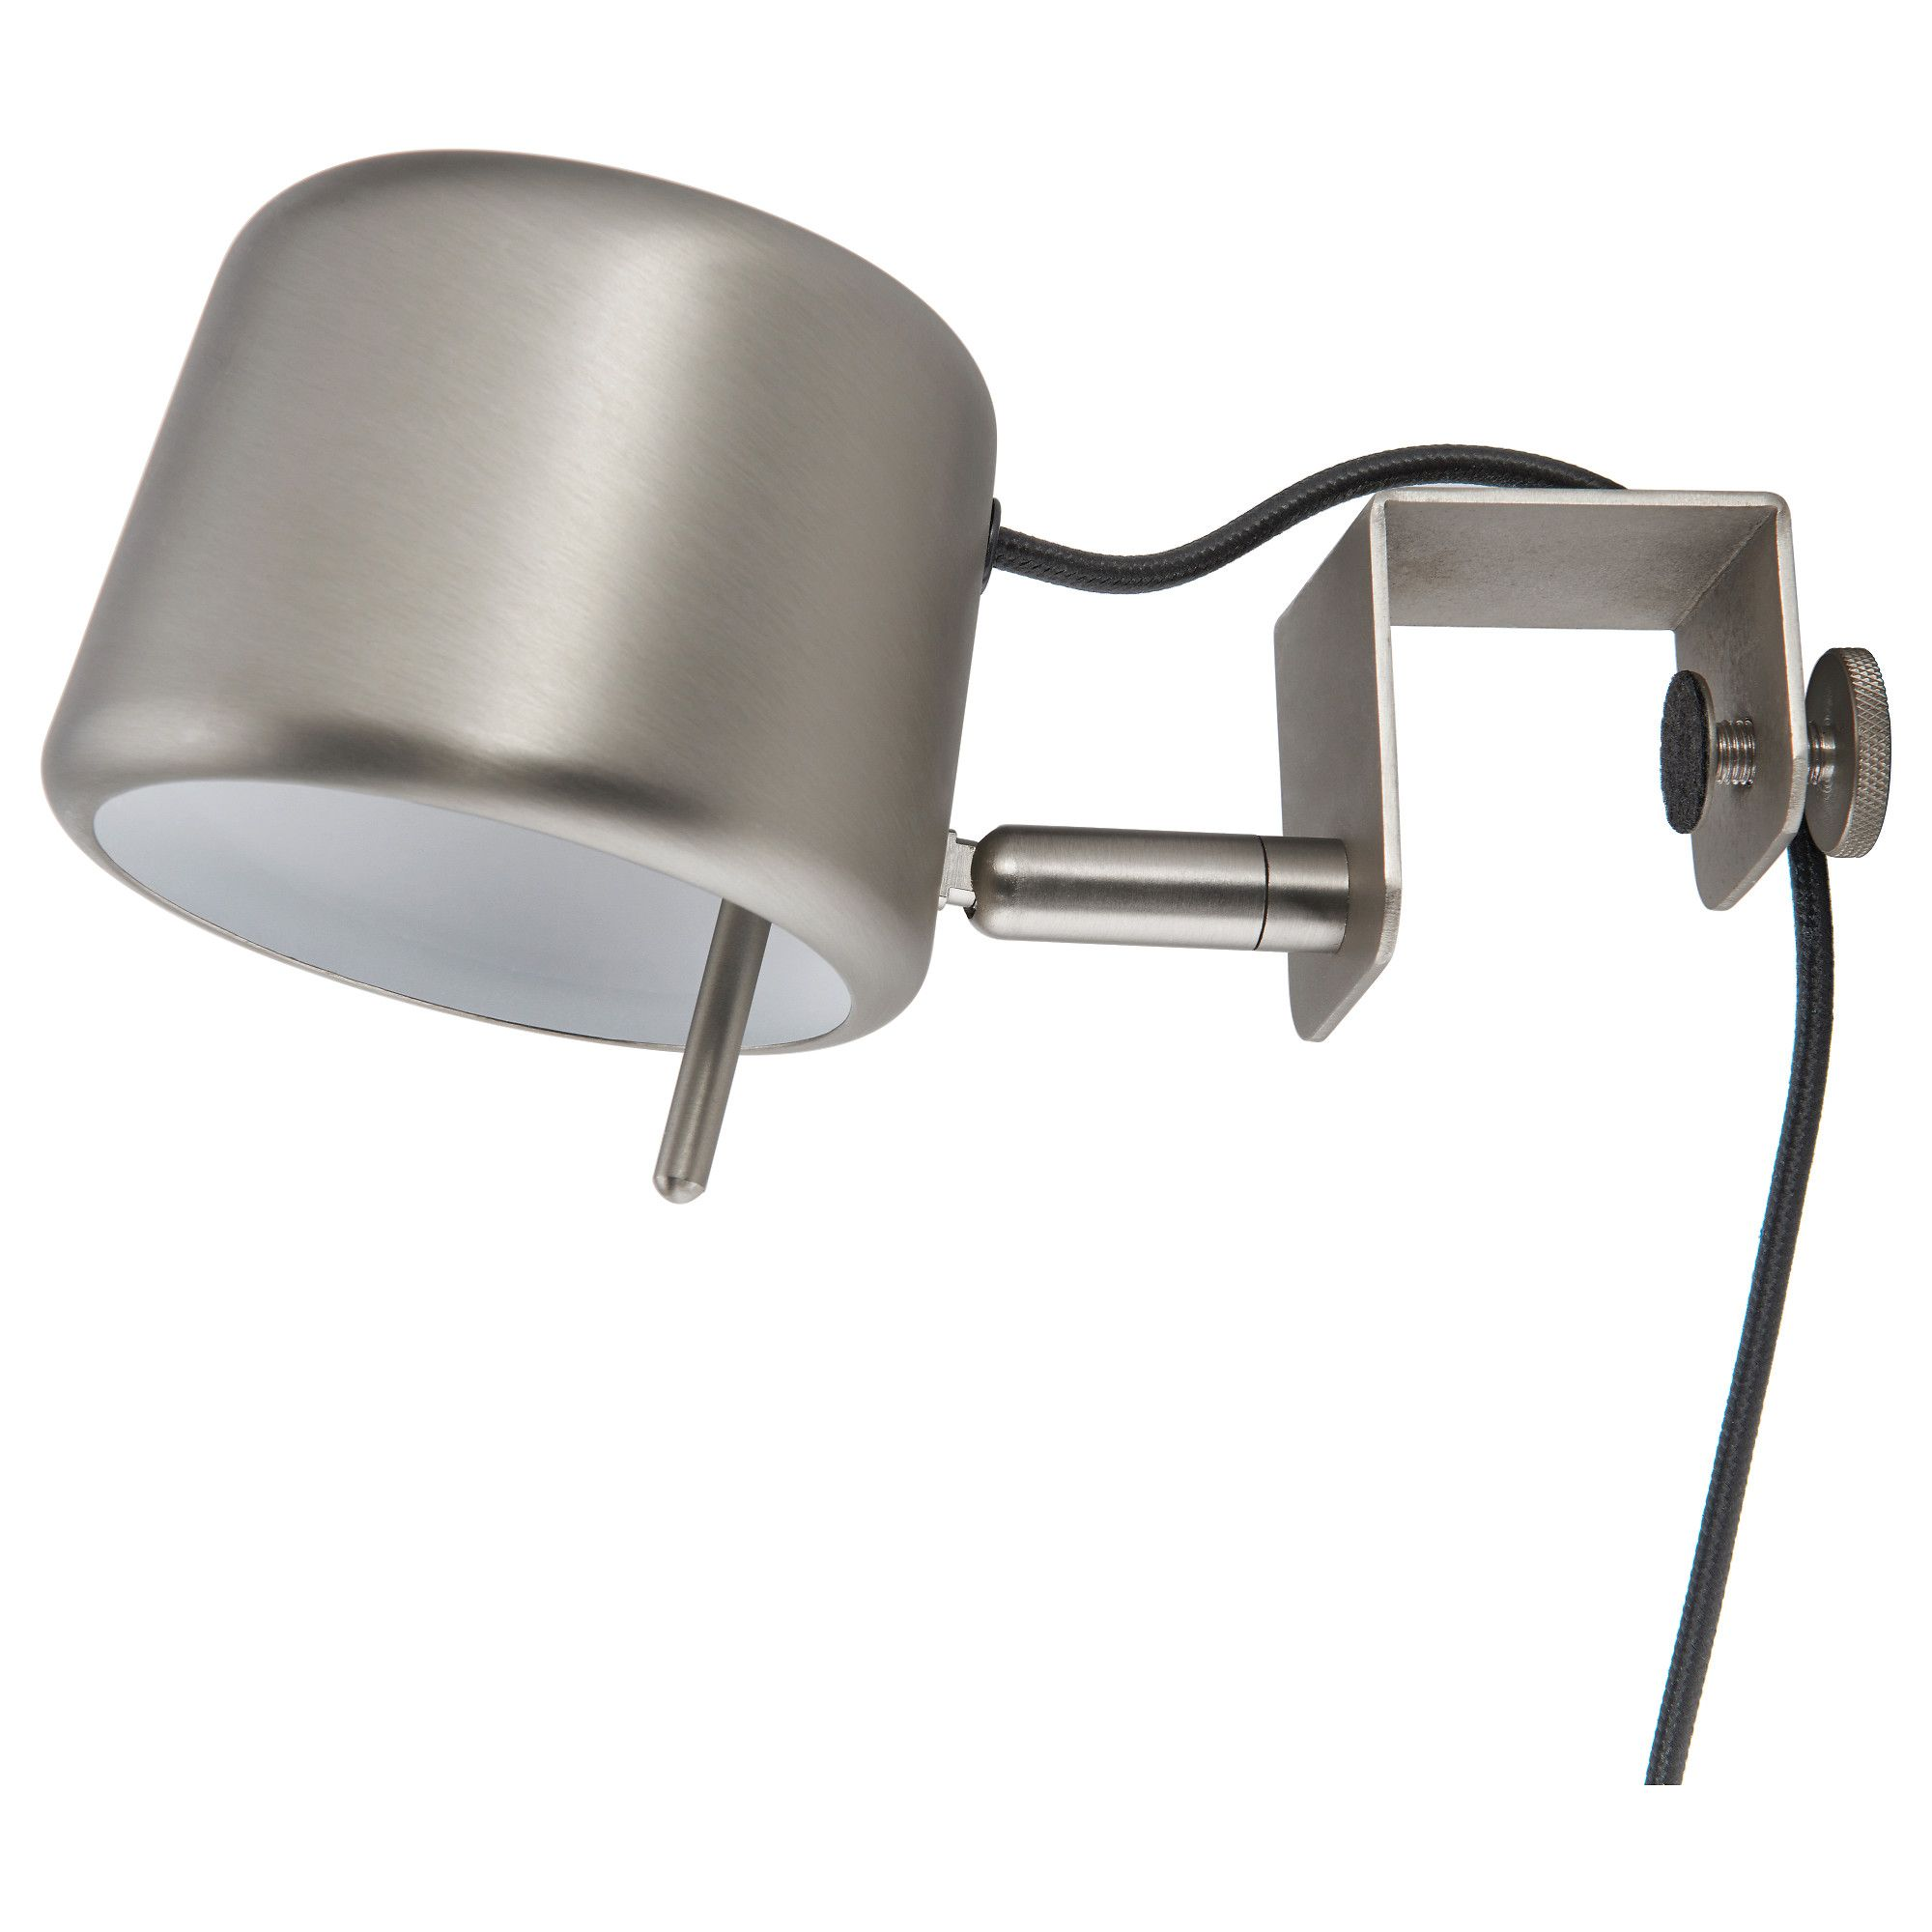 mutable as clip metal ah antique double westinghouse lamps capitol laminated clamp wells s stylish black beds lamp round inch lighting on